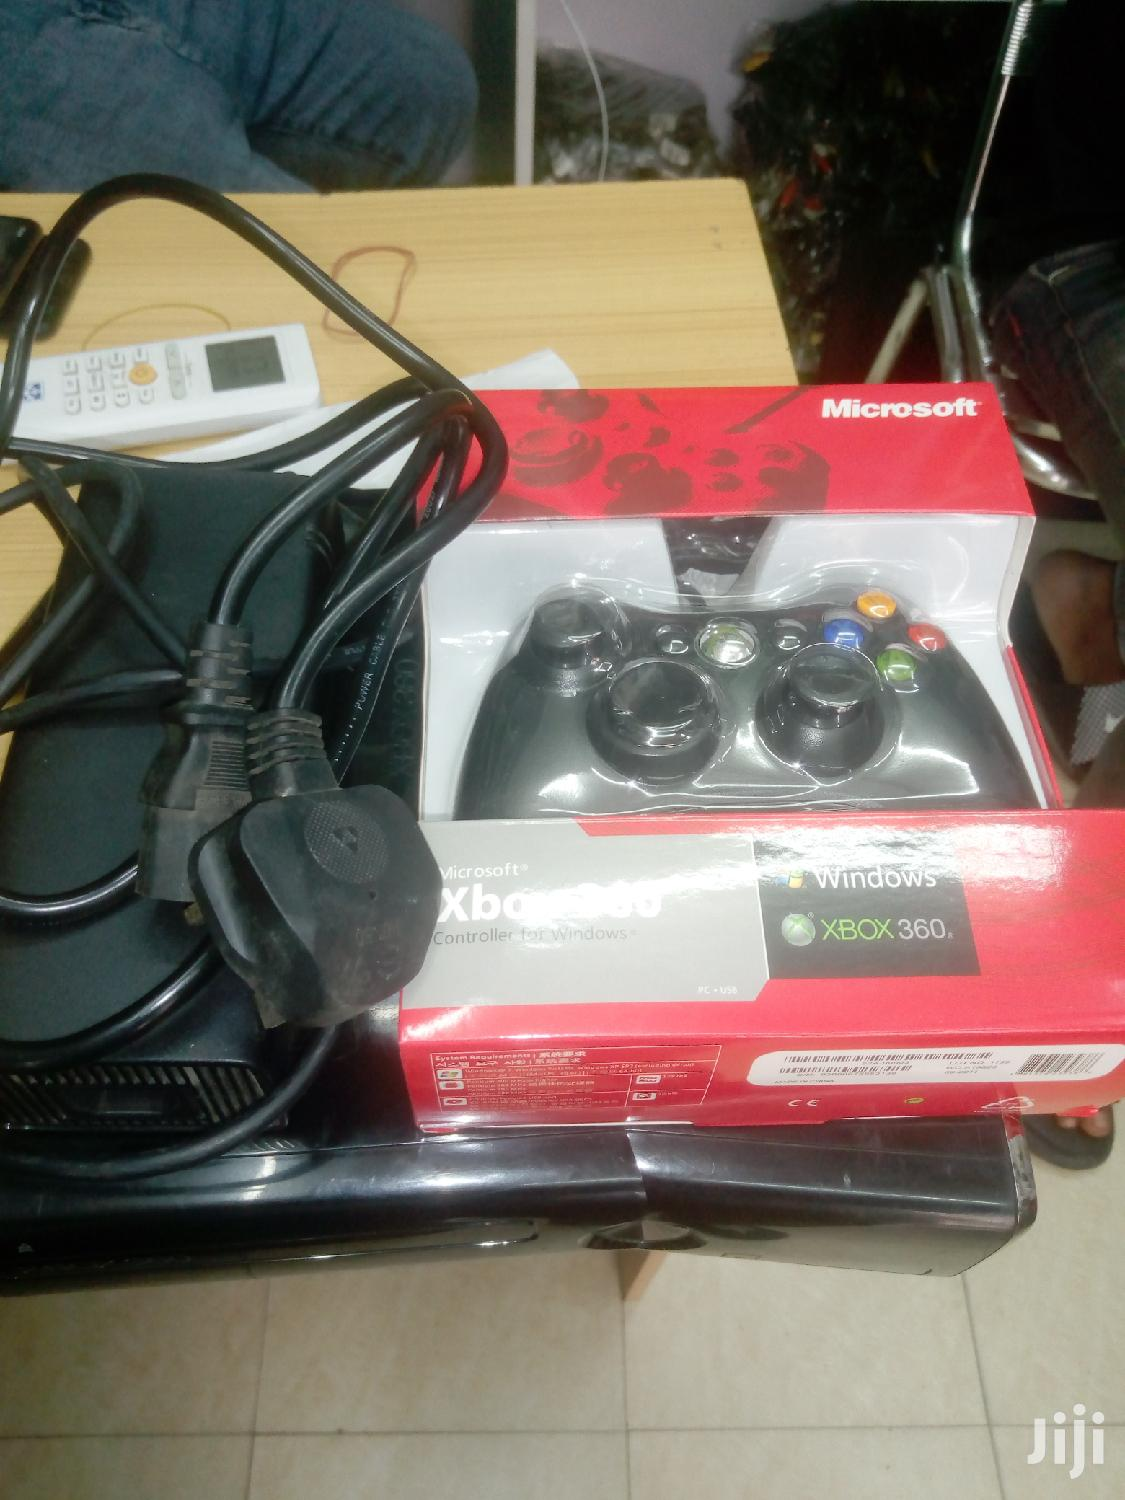 Xbox 360 Complete Console, Loaded With Games, With All Accessories | Video Game Consoles for sale in Achimota, Greater Accra, Ghana